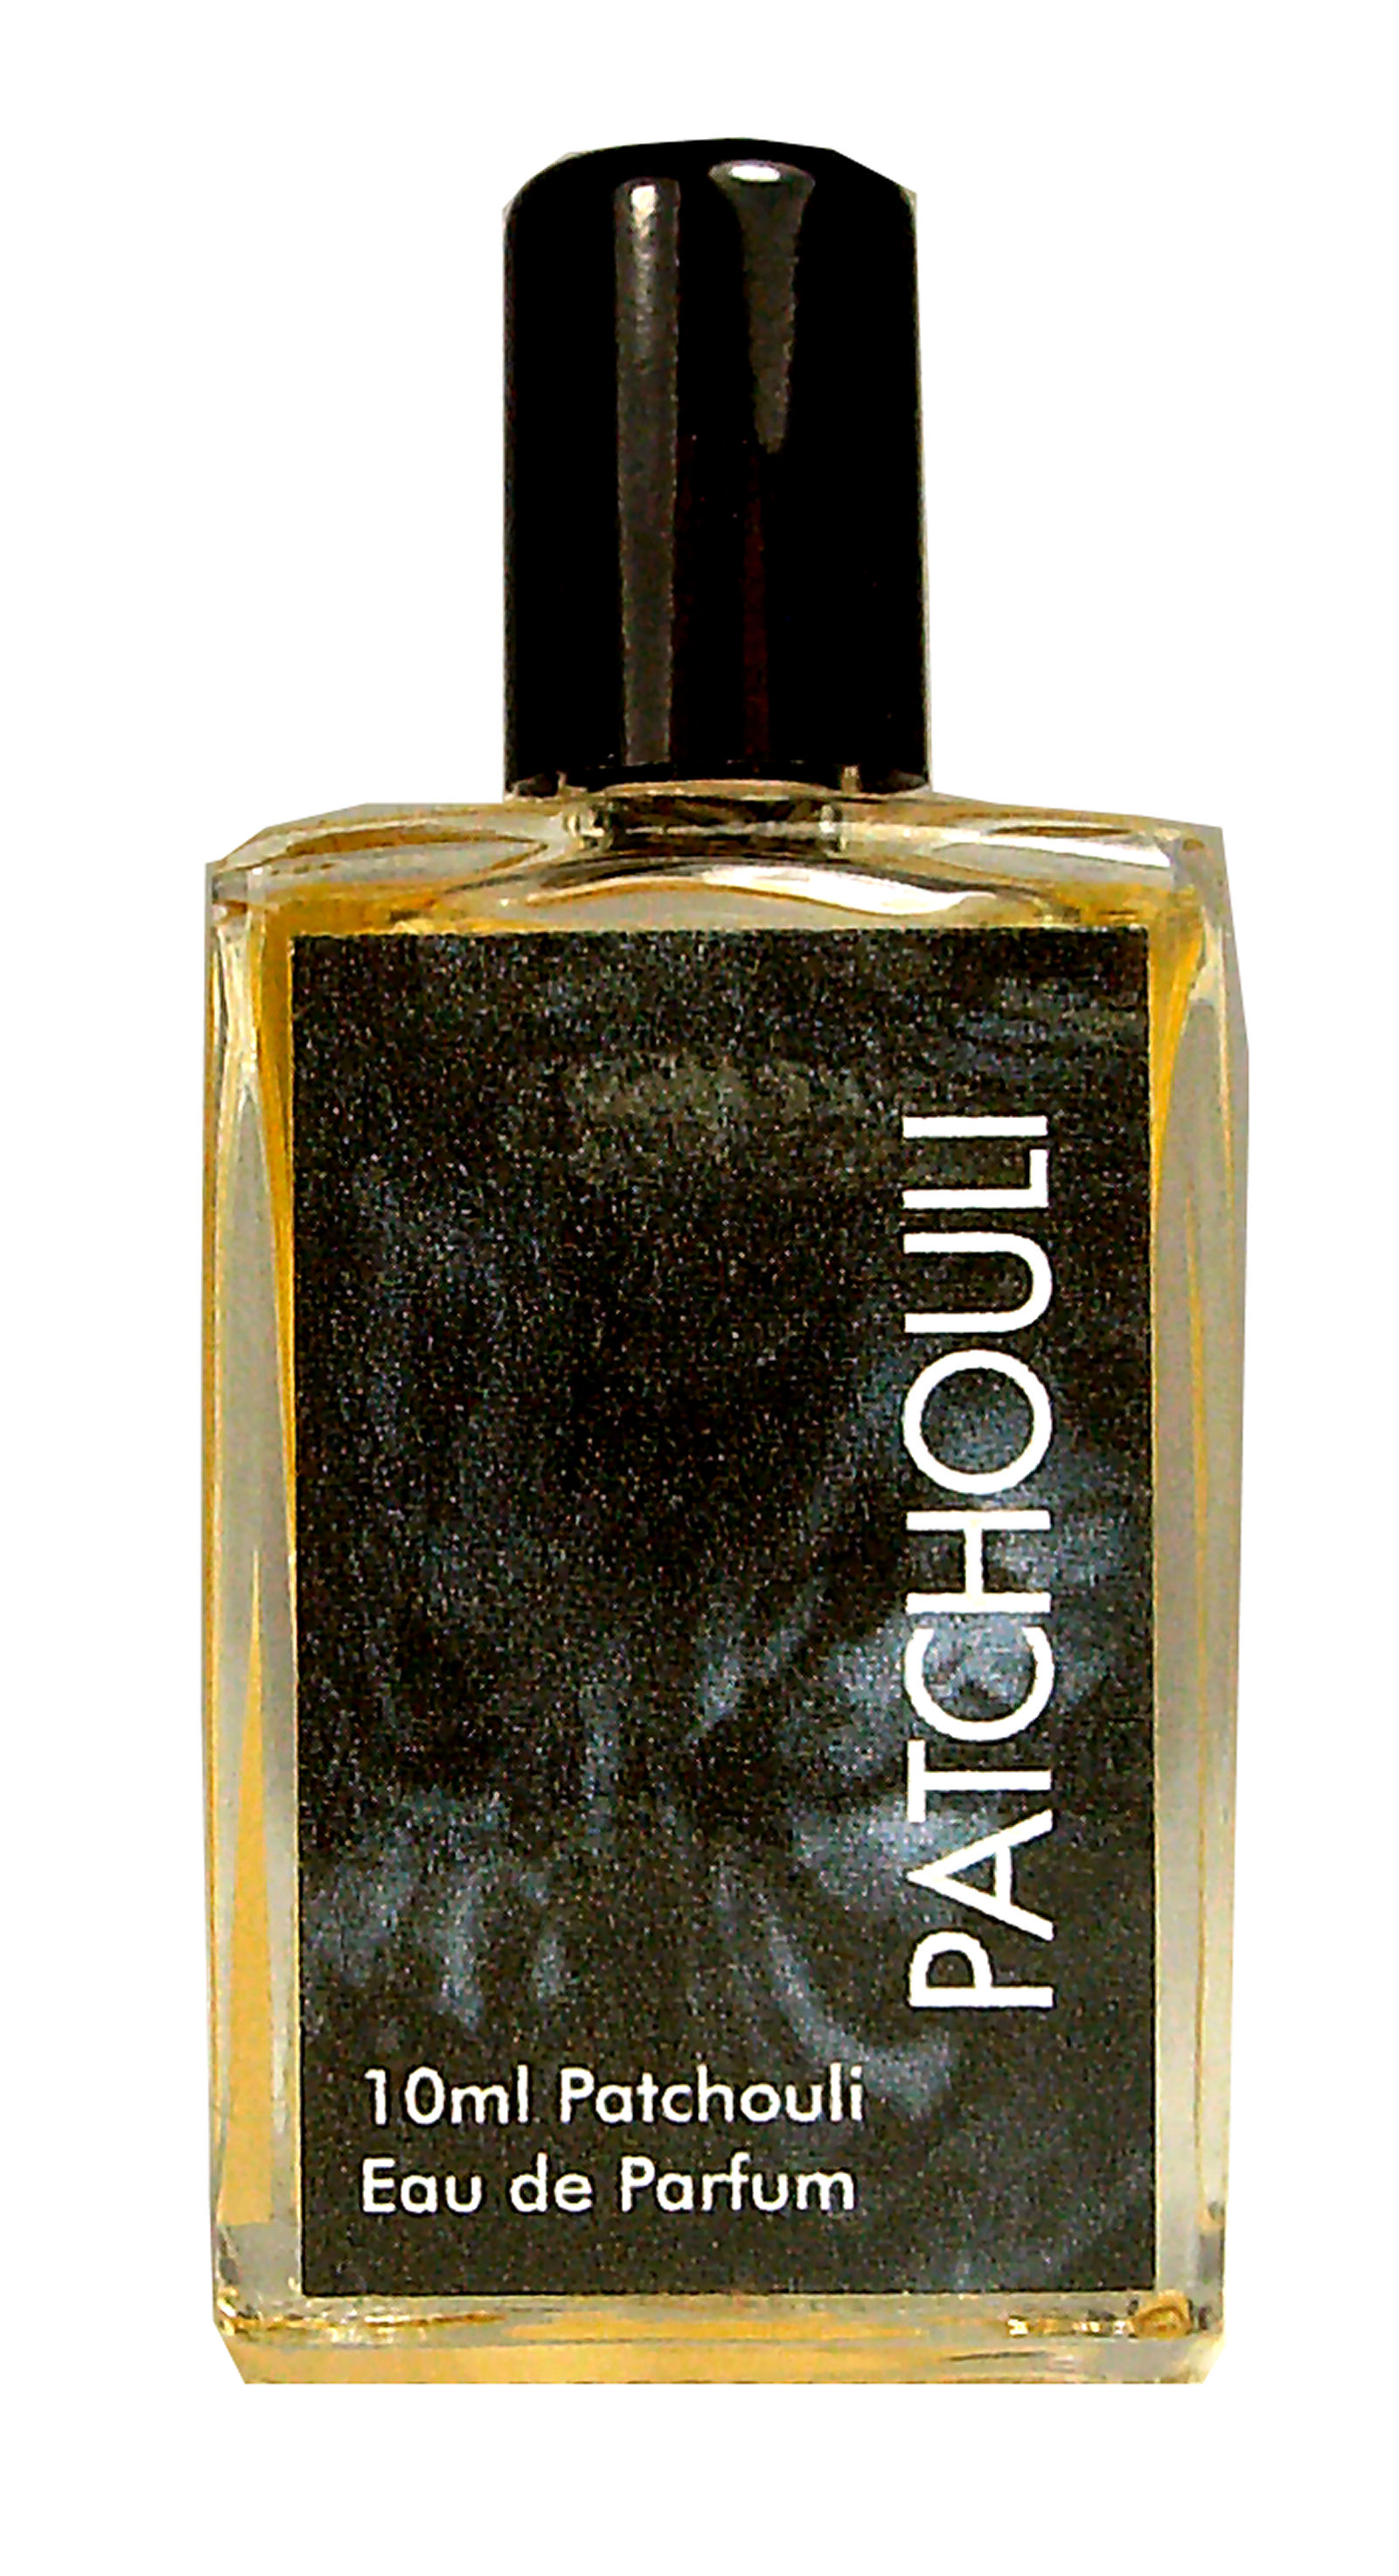 patchouli natur eau de parf m 10 ml patchoulishop. Black Bedroom Furniture Sets. Home Design Ideas